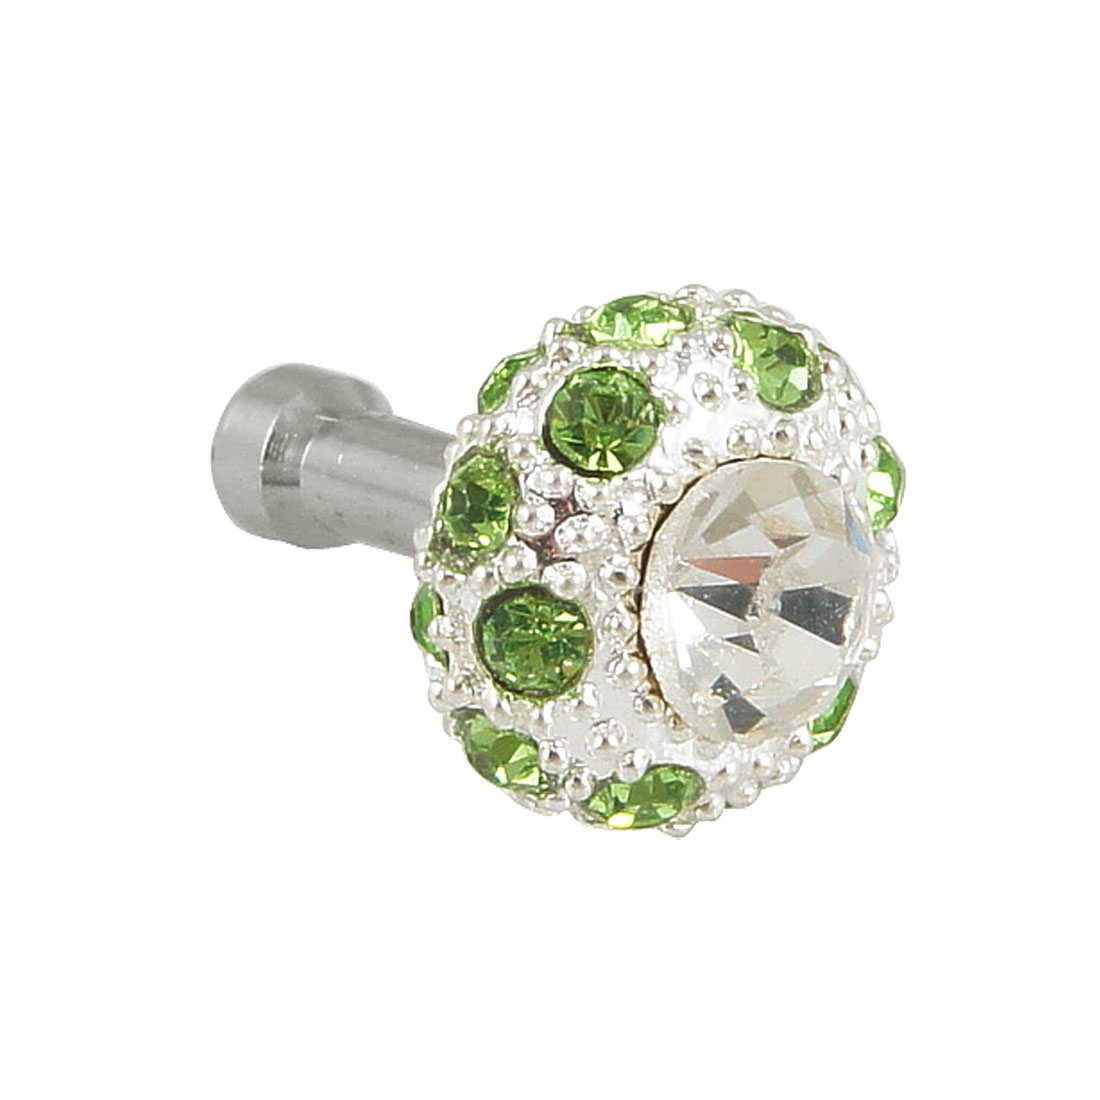 Bling Green Crystal 3.5mm Anti Dust Earphone Cap Stopper for Phone